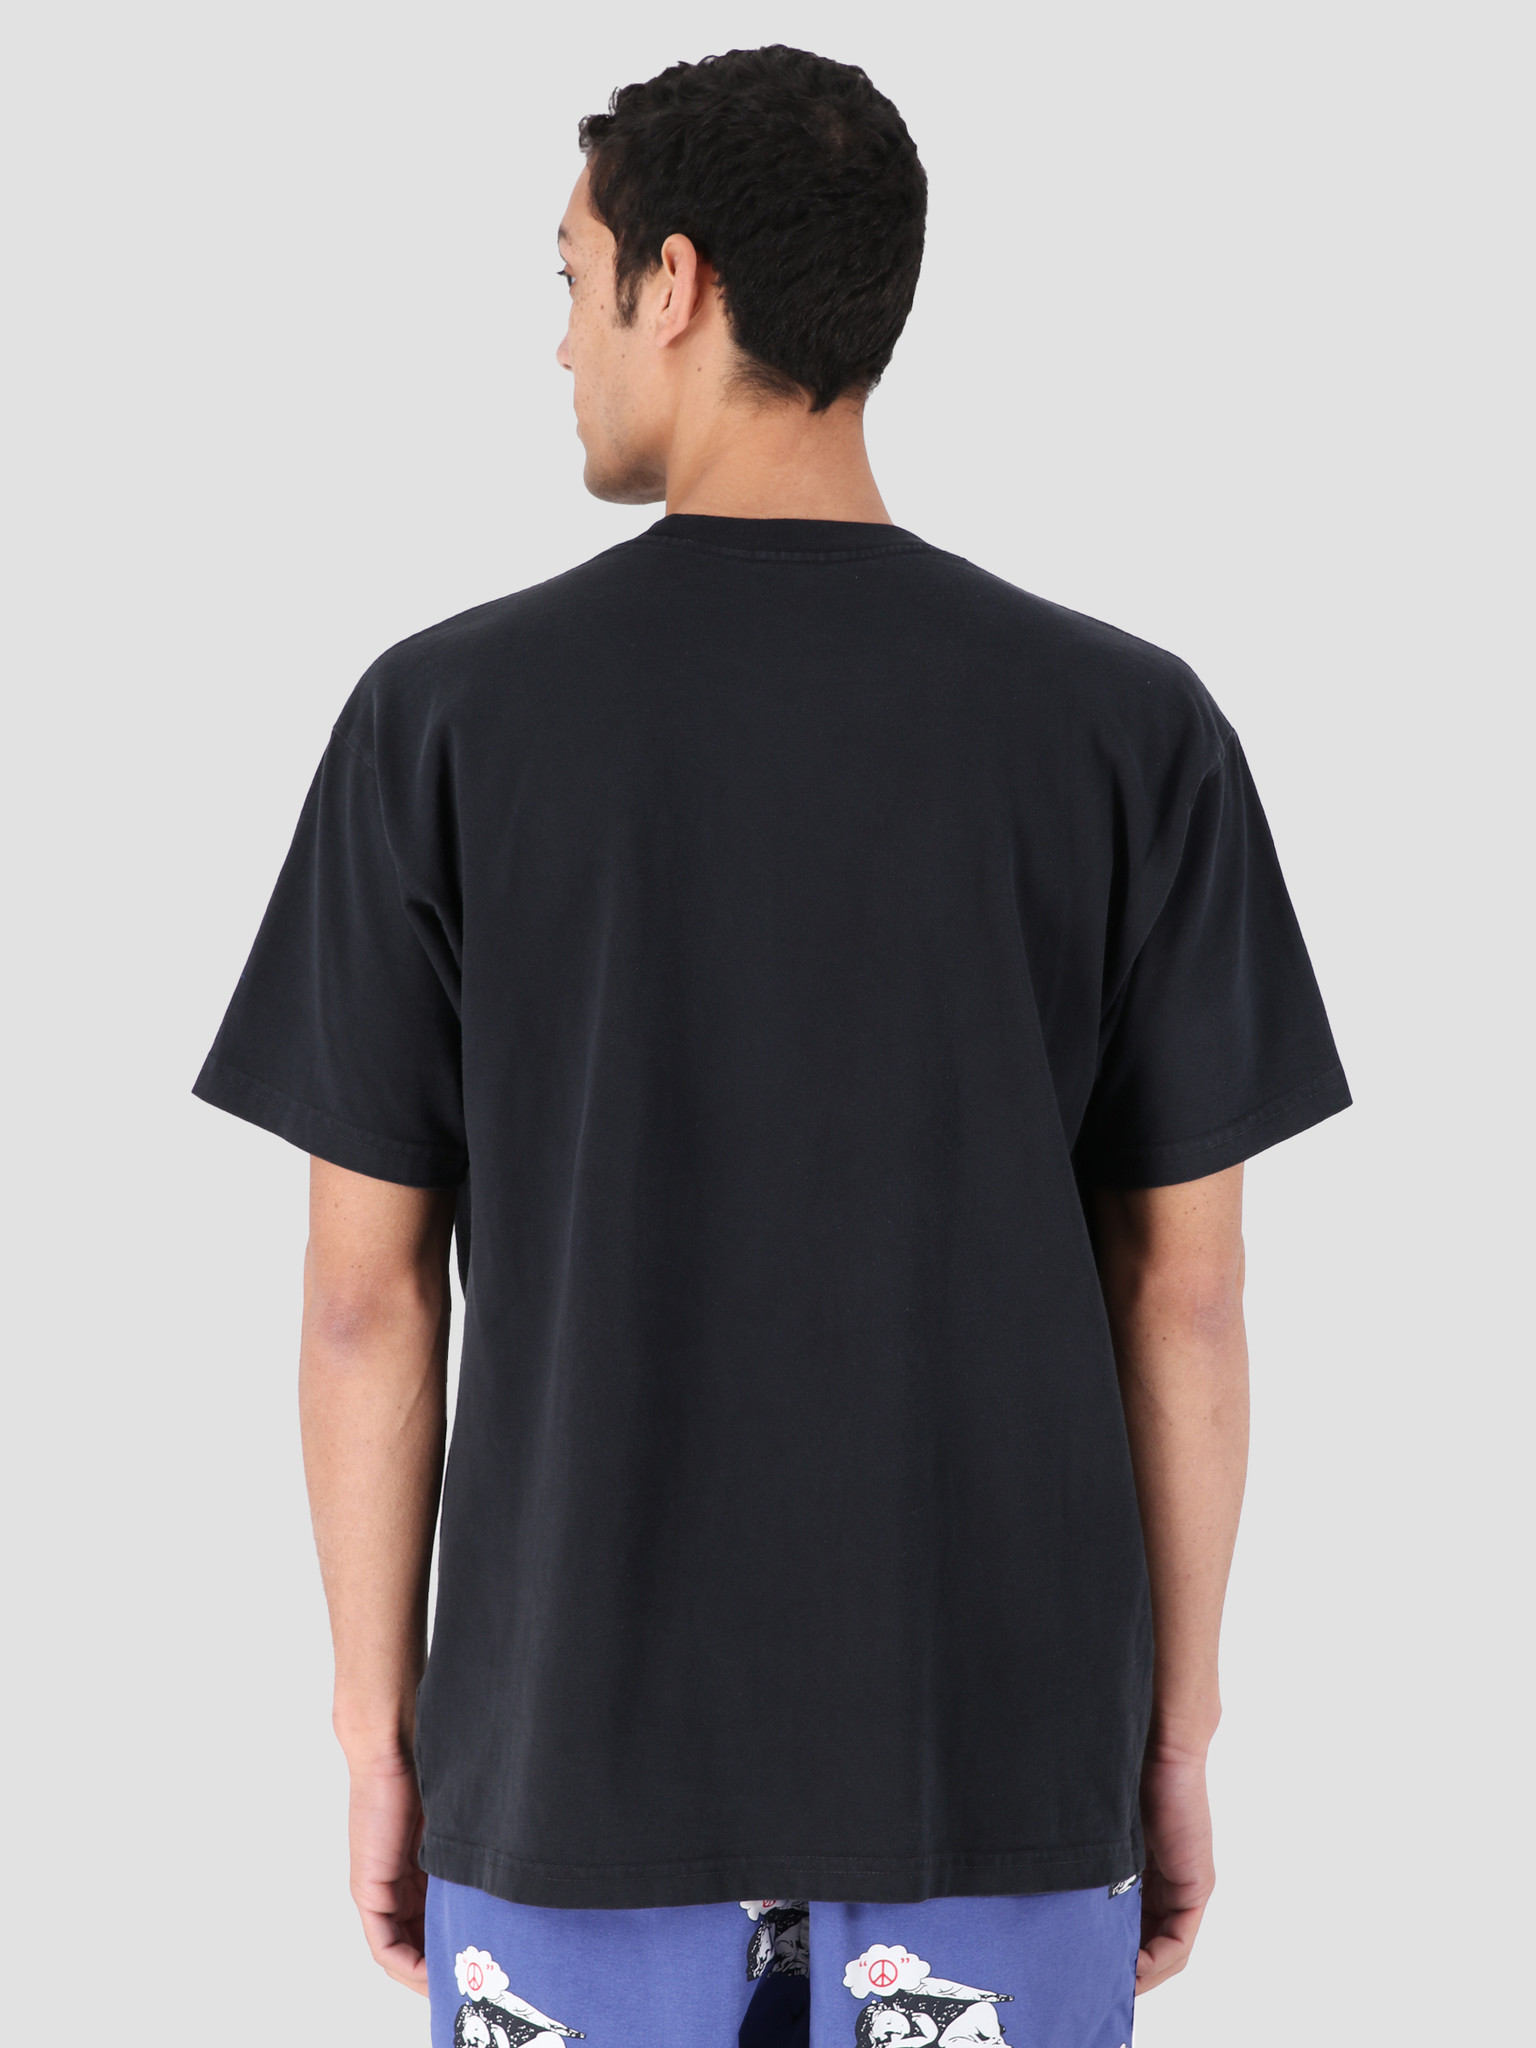 Obey Obey Beekeeper T-shirt Off Black 166912564E-OBK